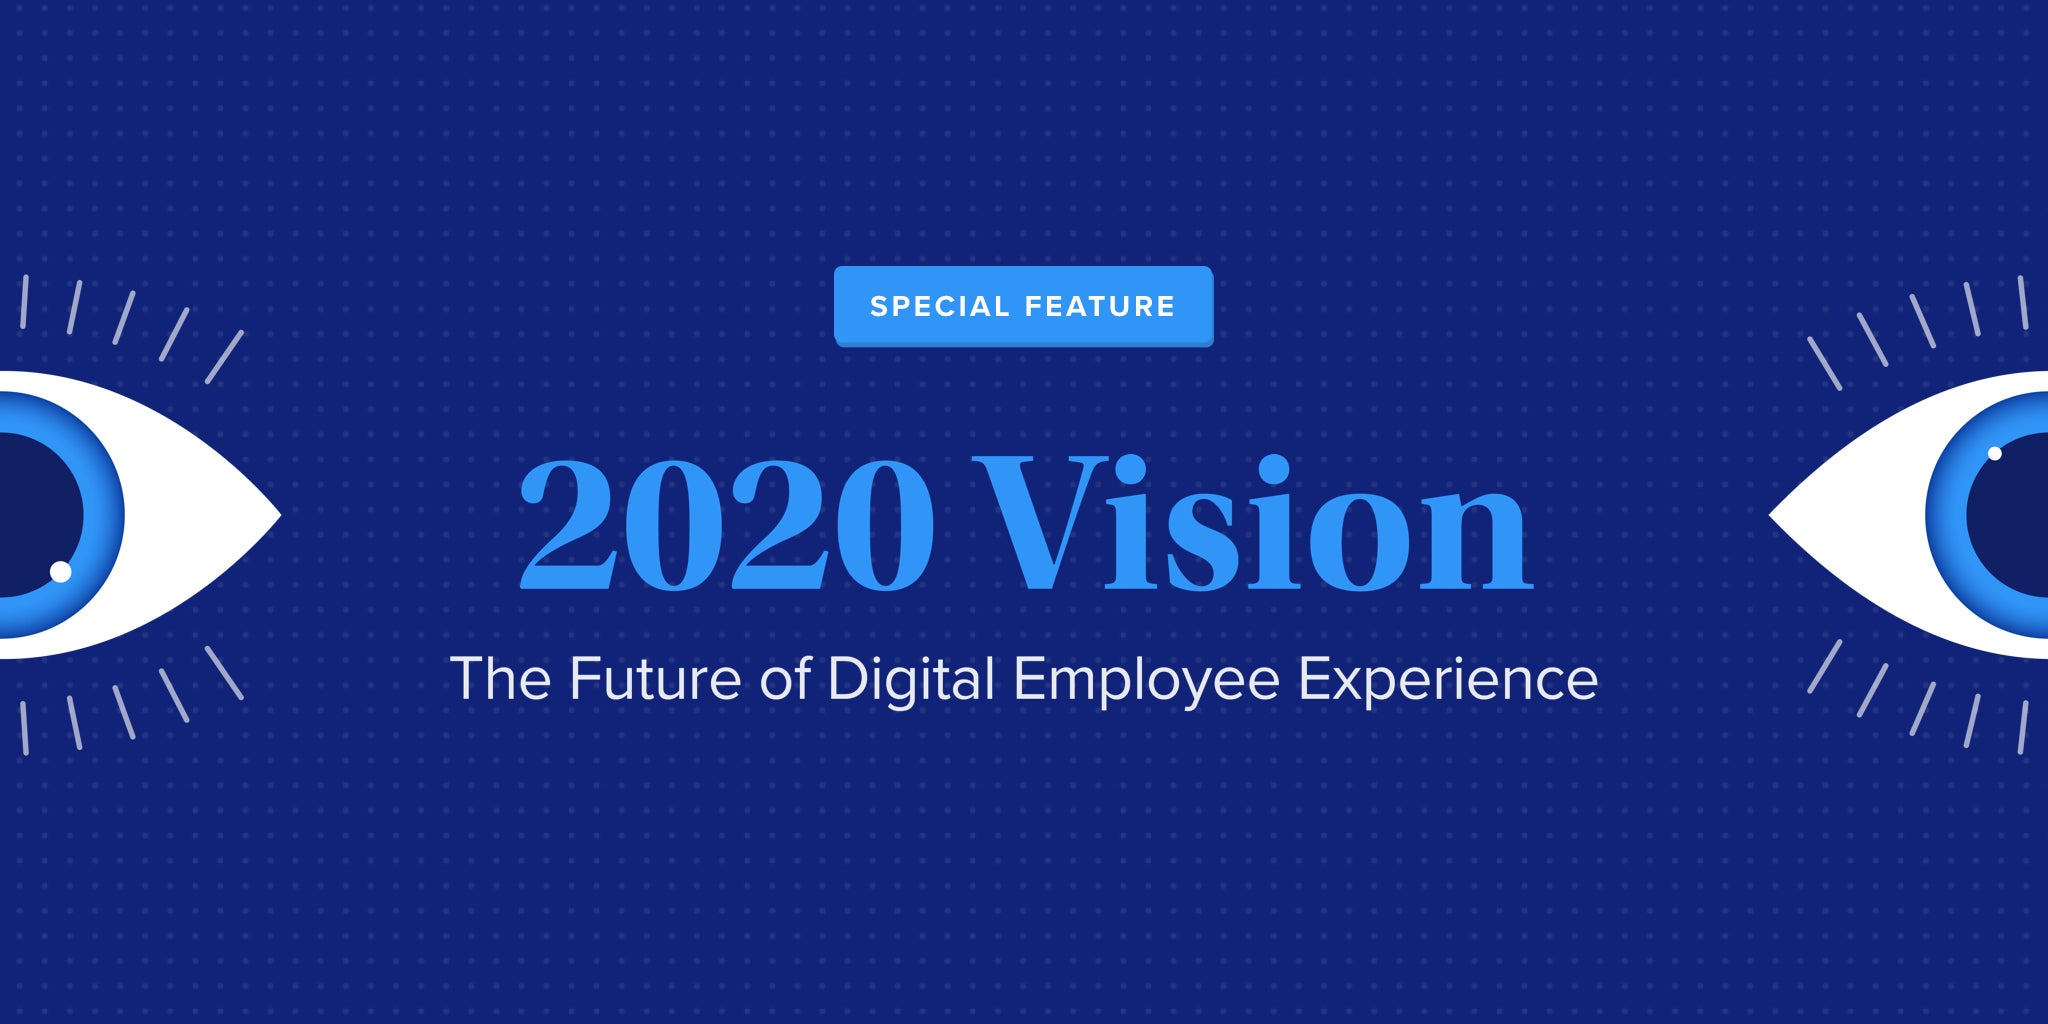 the future of digital employee experience